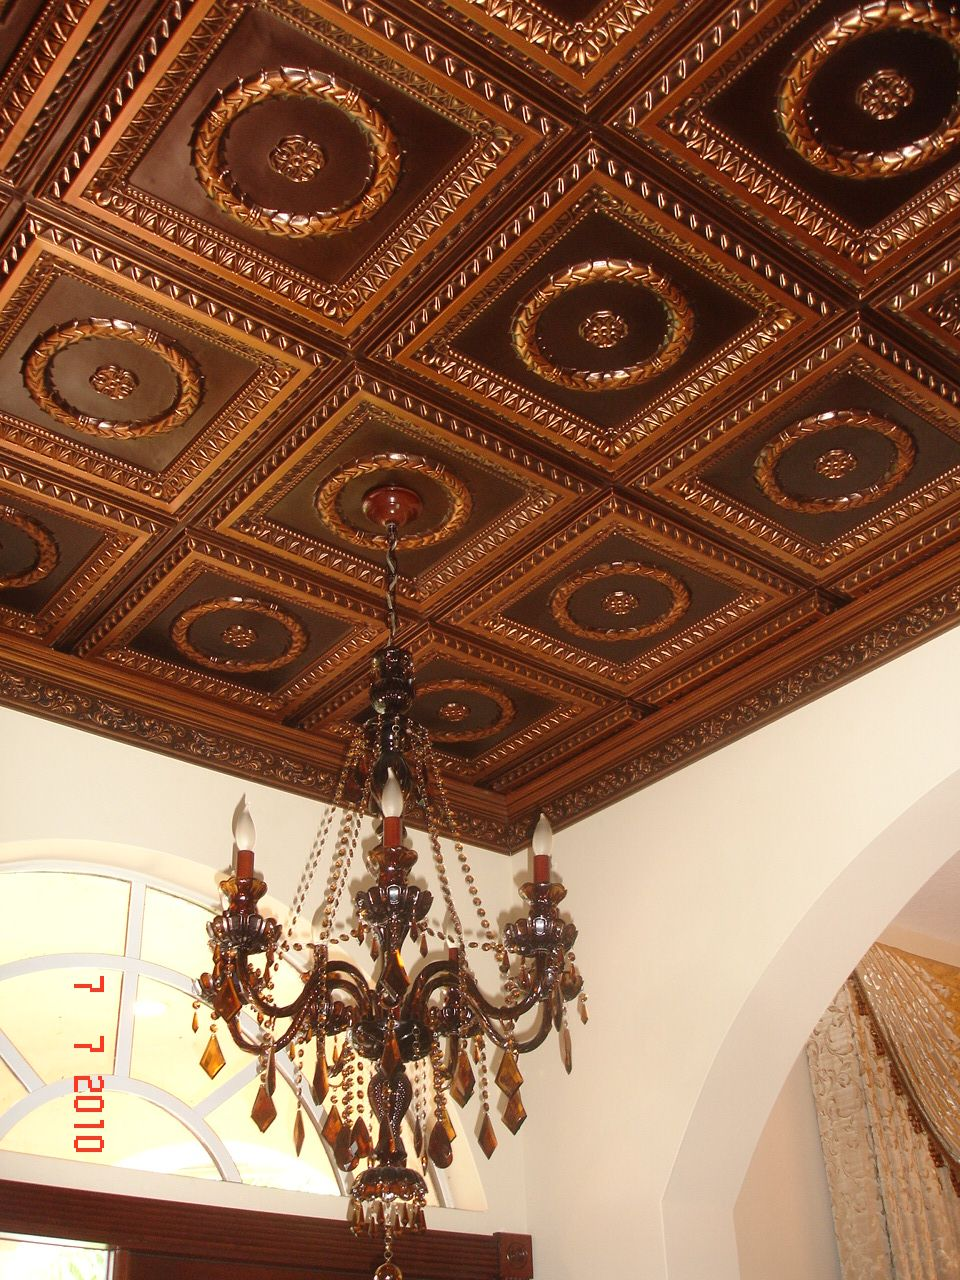 We Have Installed This Ceiling Two Years Ago In Boca Raton The Crown Molding Was Hand Painted To Match Th Tin Ceiling Faux Tin Ceiling Faux Tin Ceiling Tiles